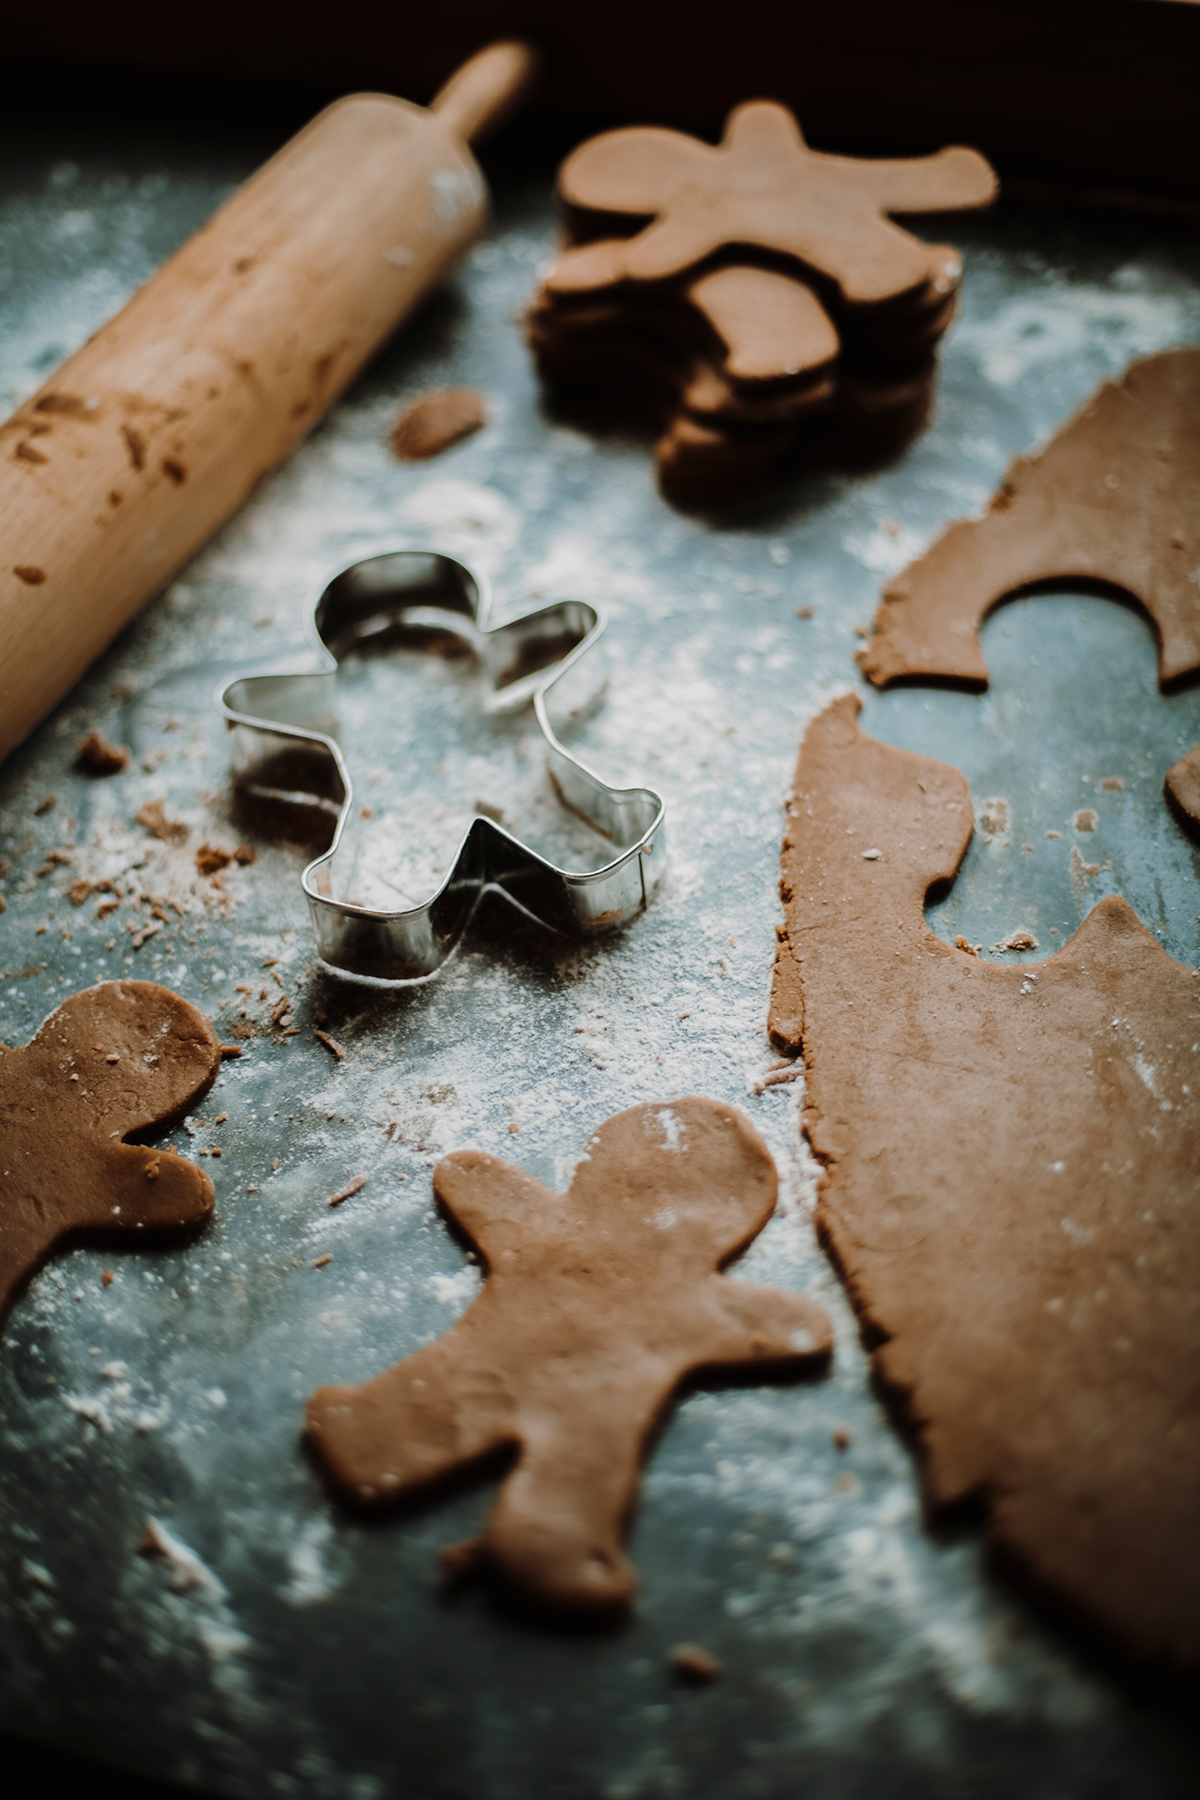 Gingerbread men being cut out of dough